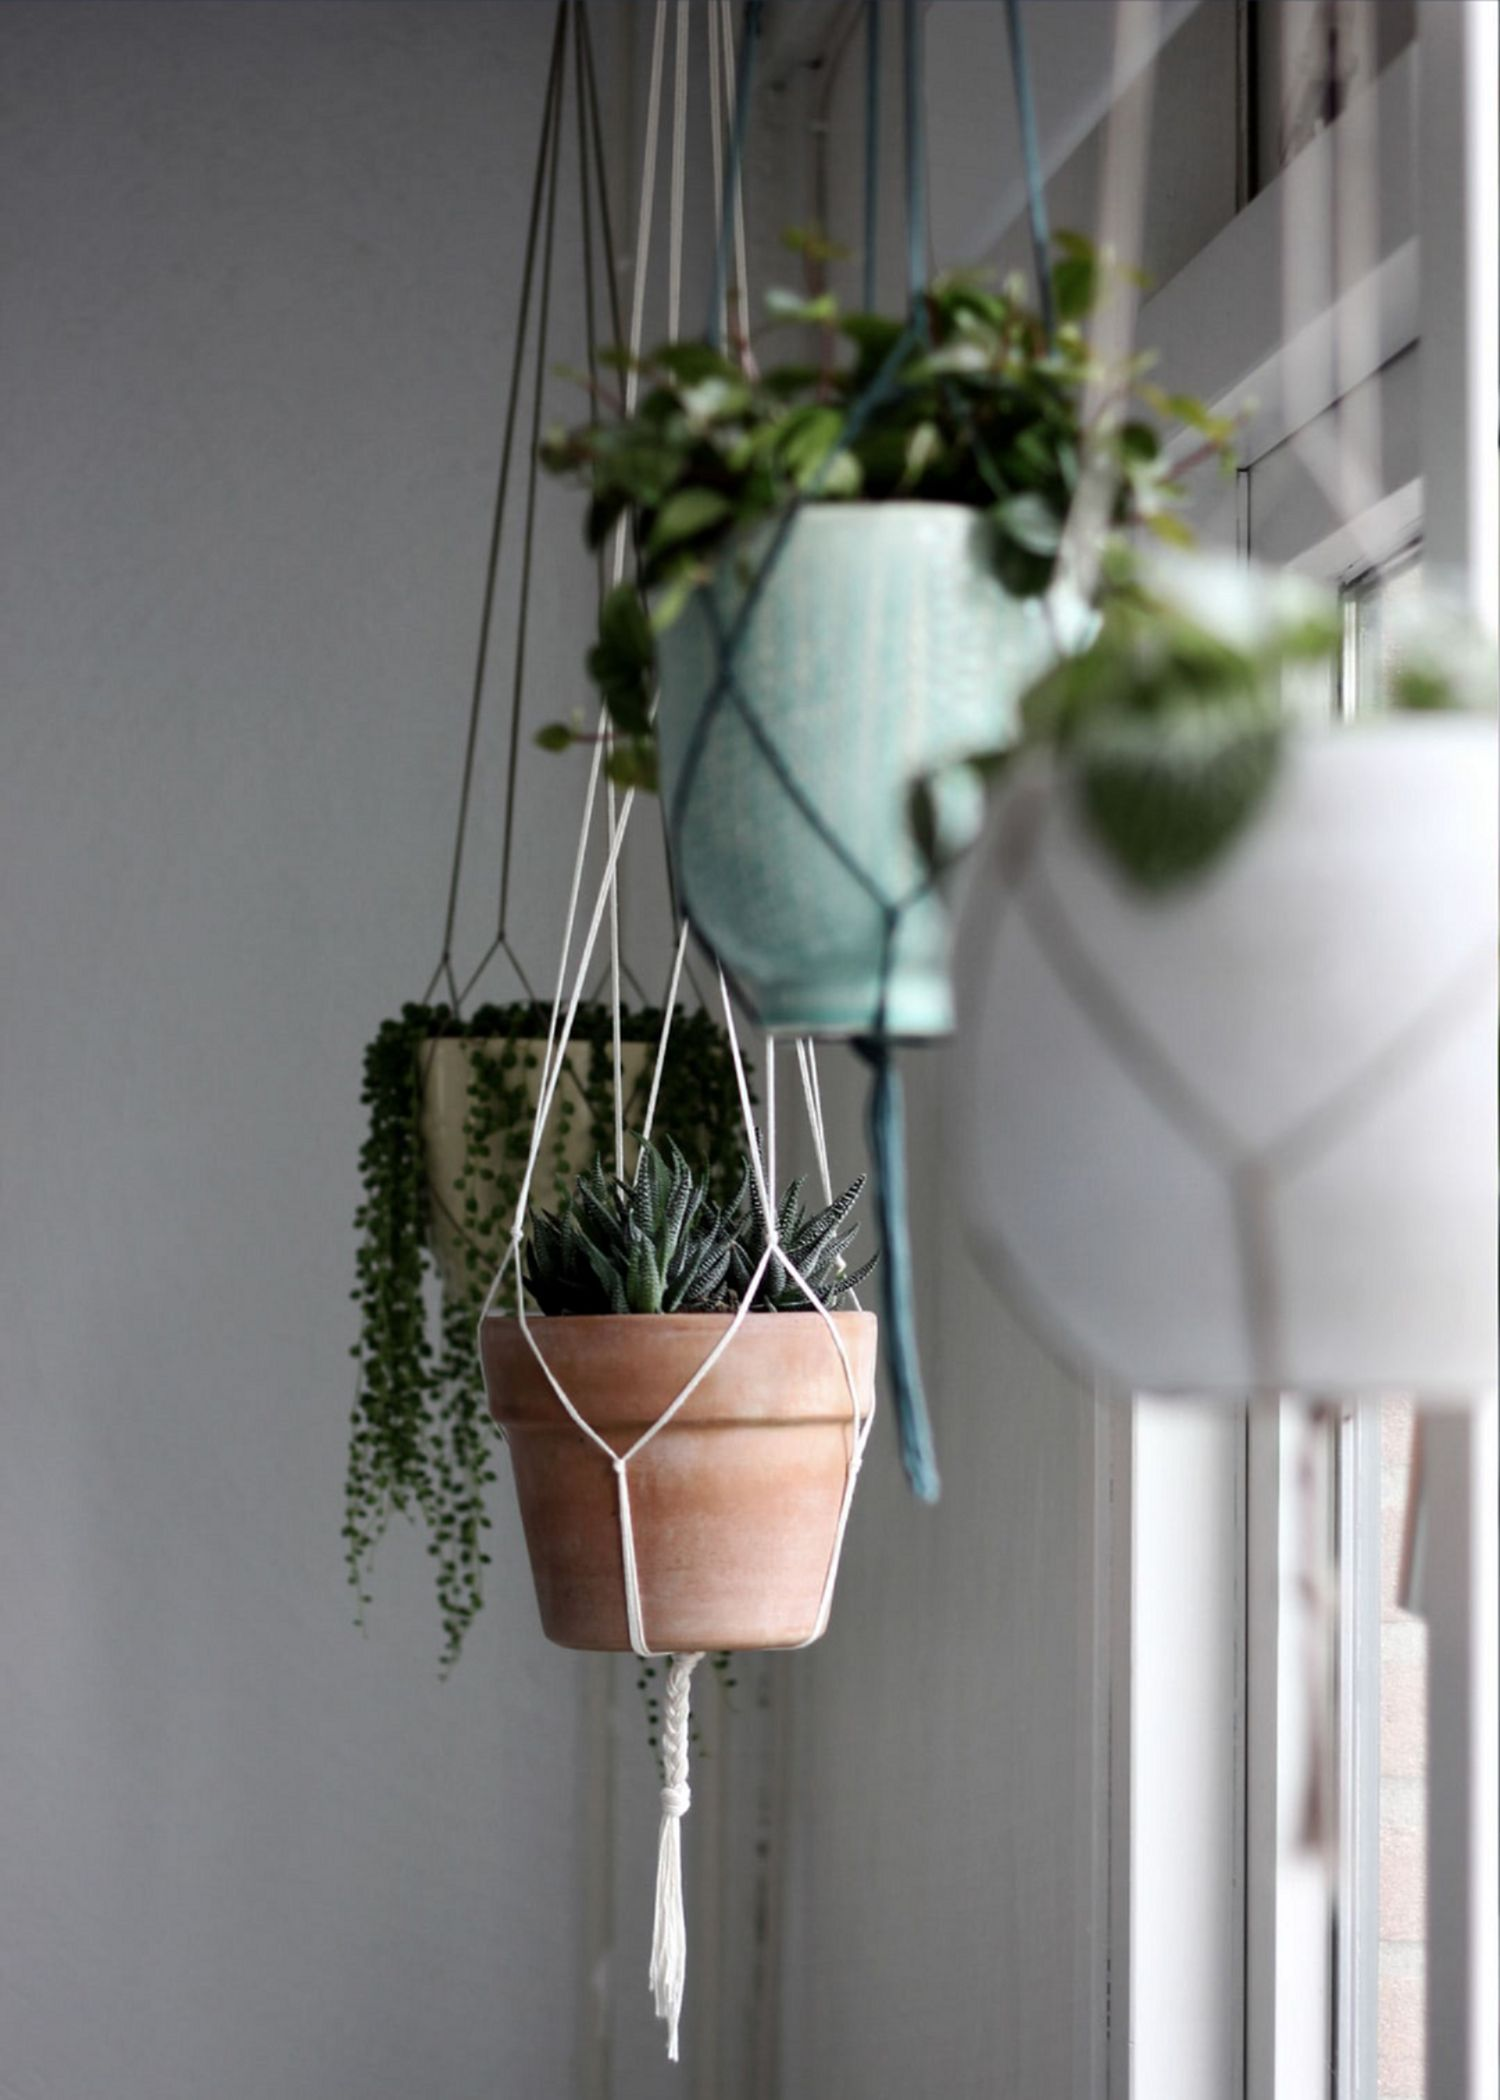 Flawless 15 DIY Window Hanging Plants Ideas For Your Home